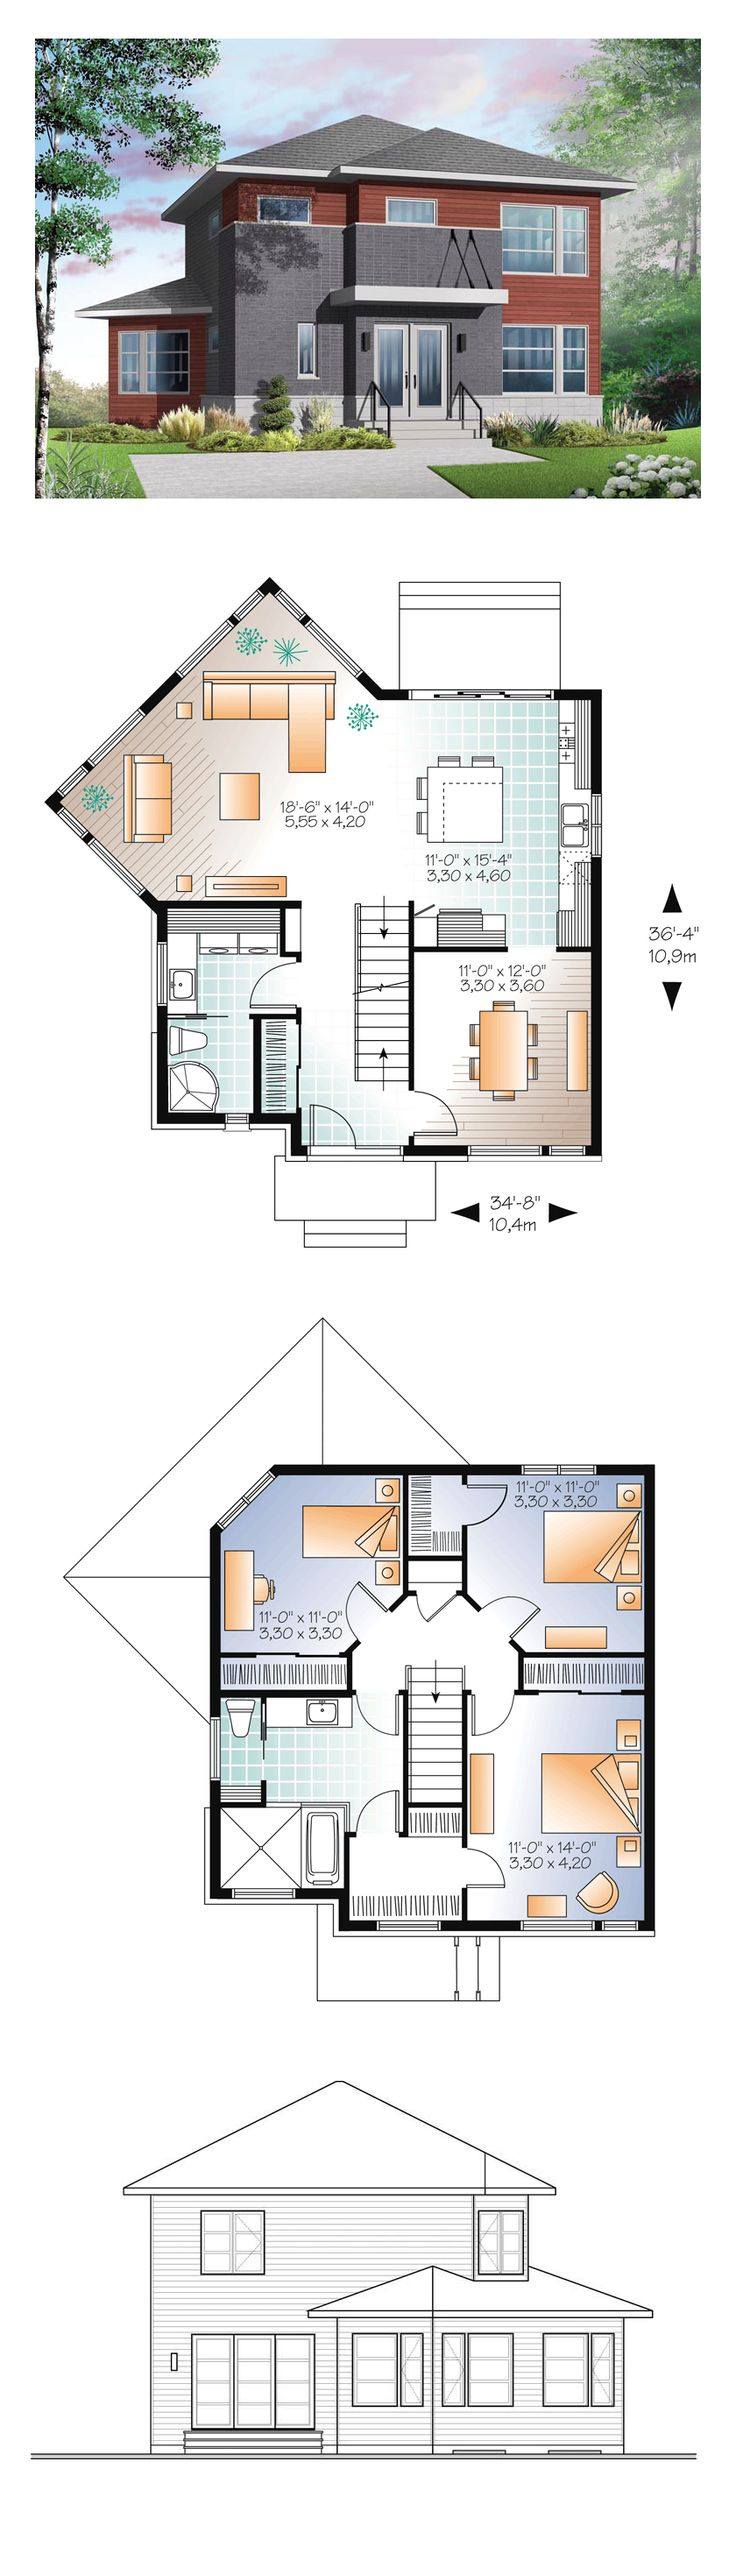 Modern House Plan 76369   Total Living Area: 1688 sq. ft., 3 bedrooms and 2 bathrooms. #modernhome